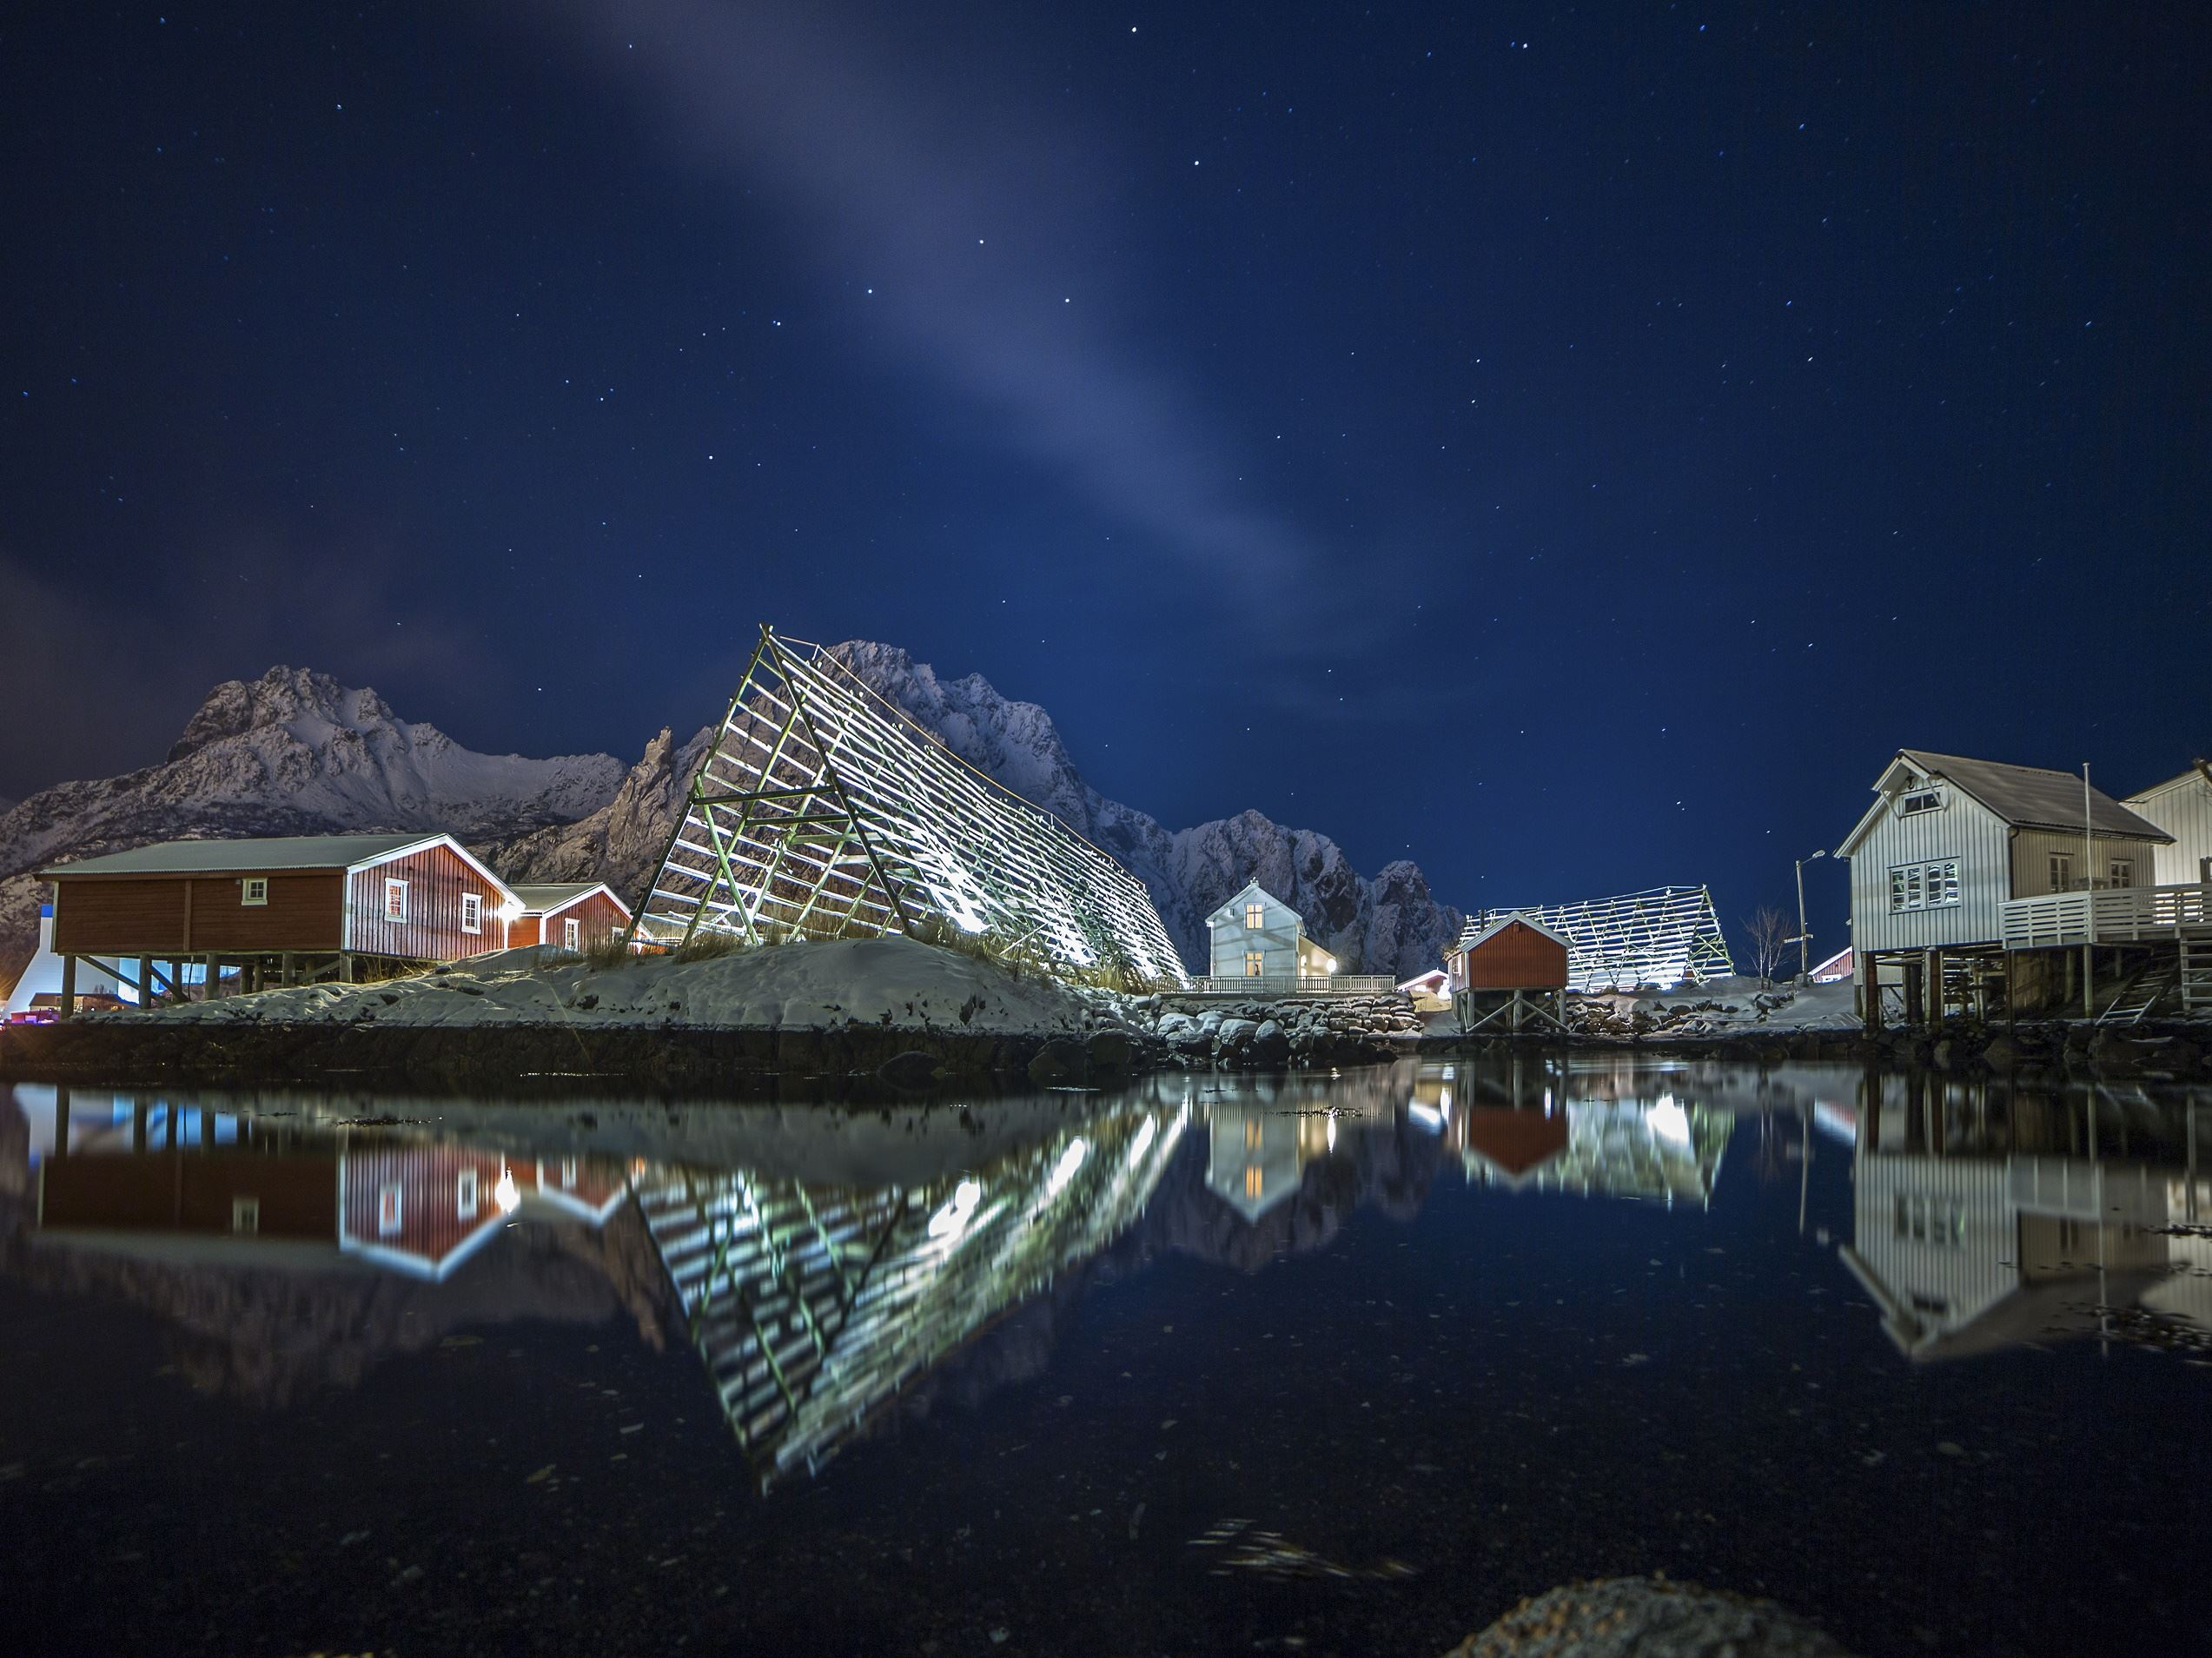 © Tommy Simonsen, Svinøya Rorbuer winter night